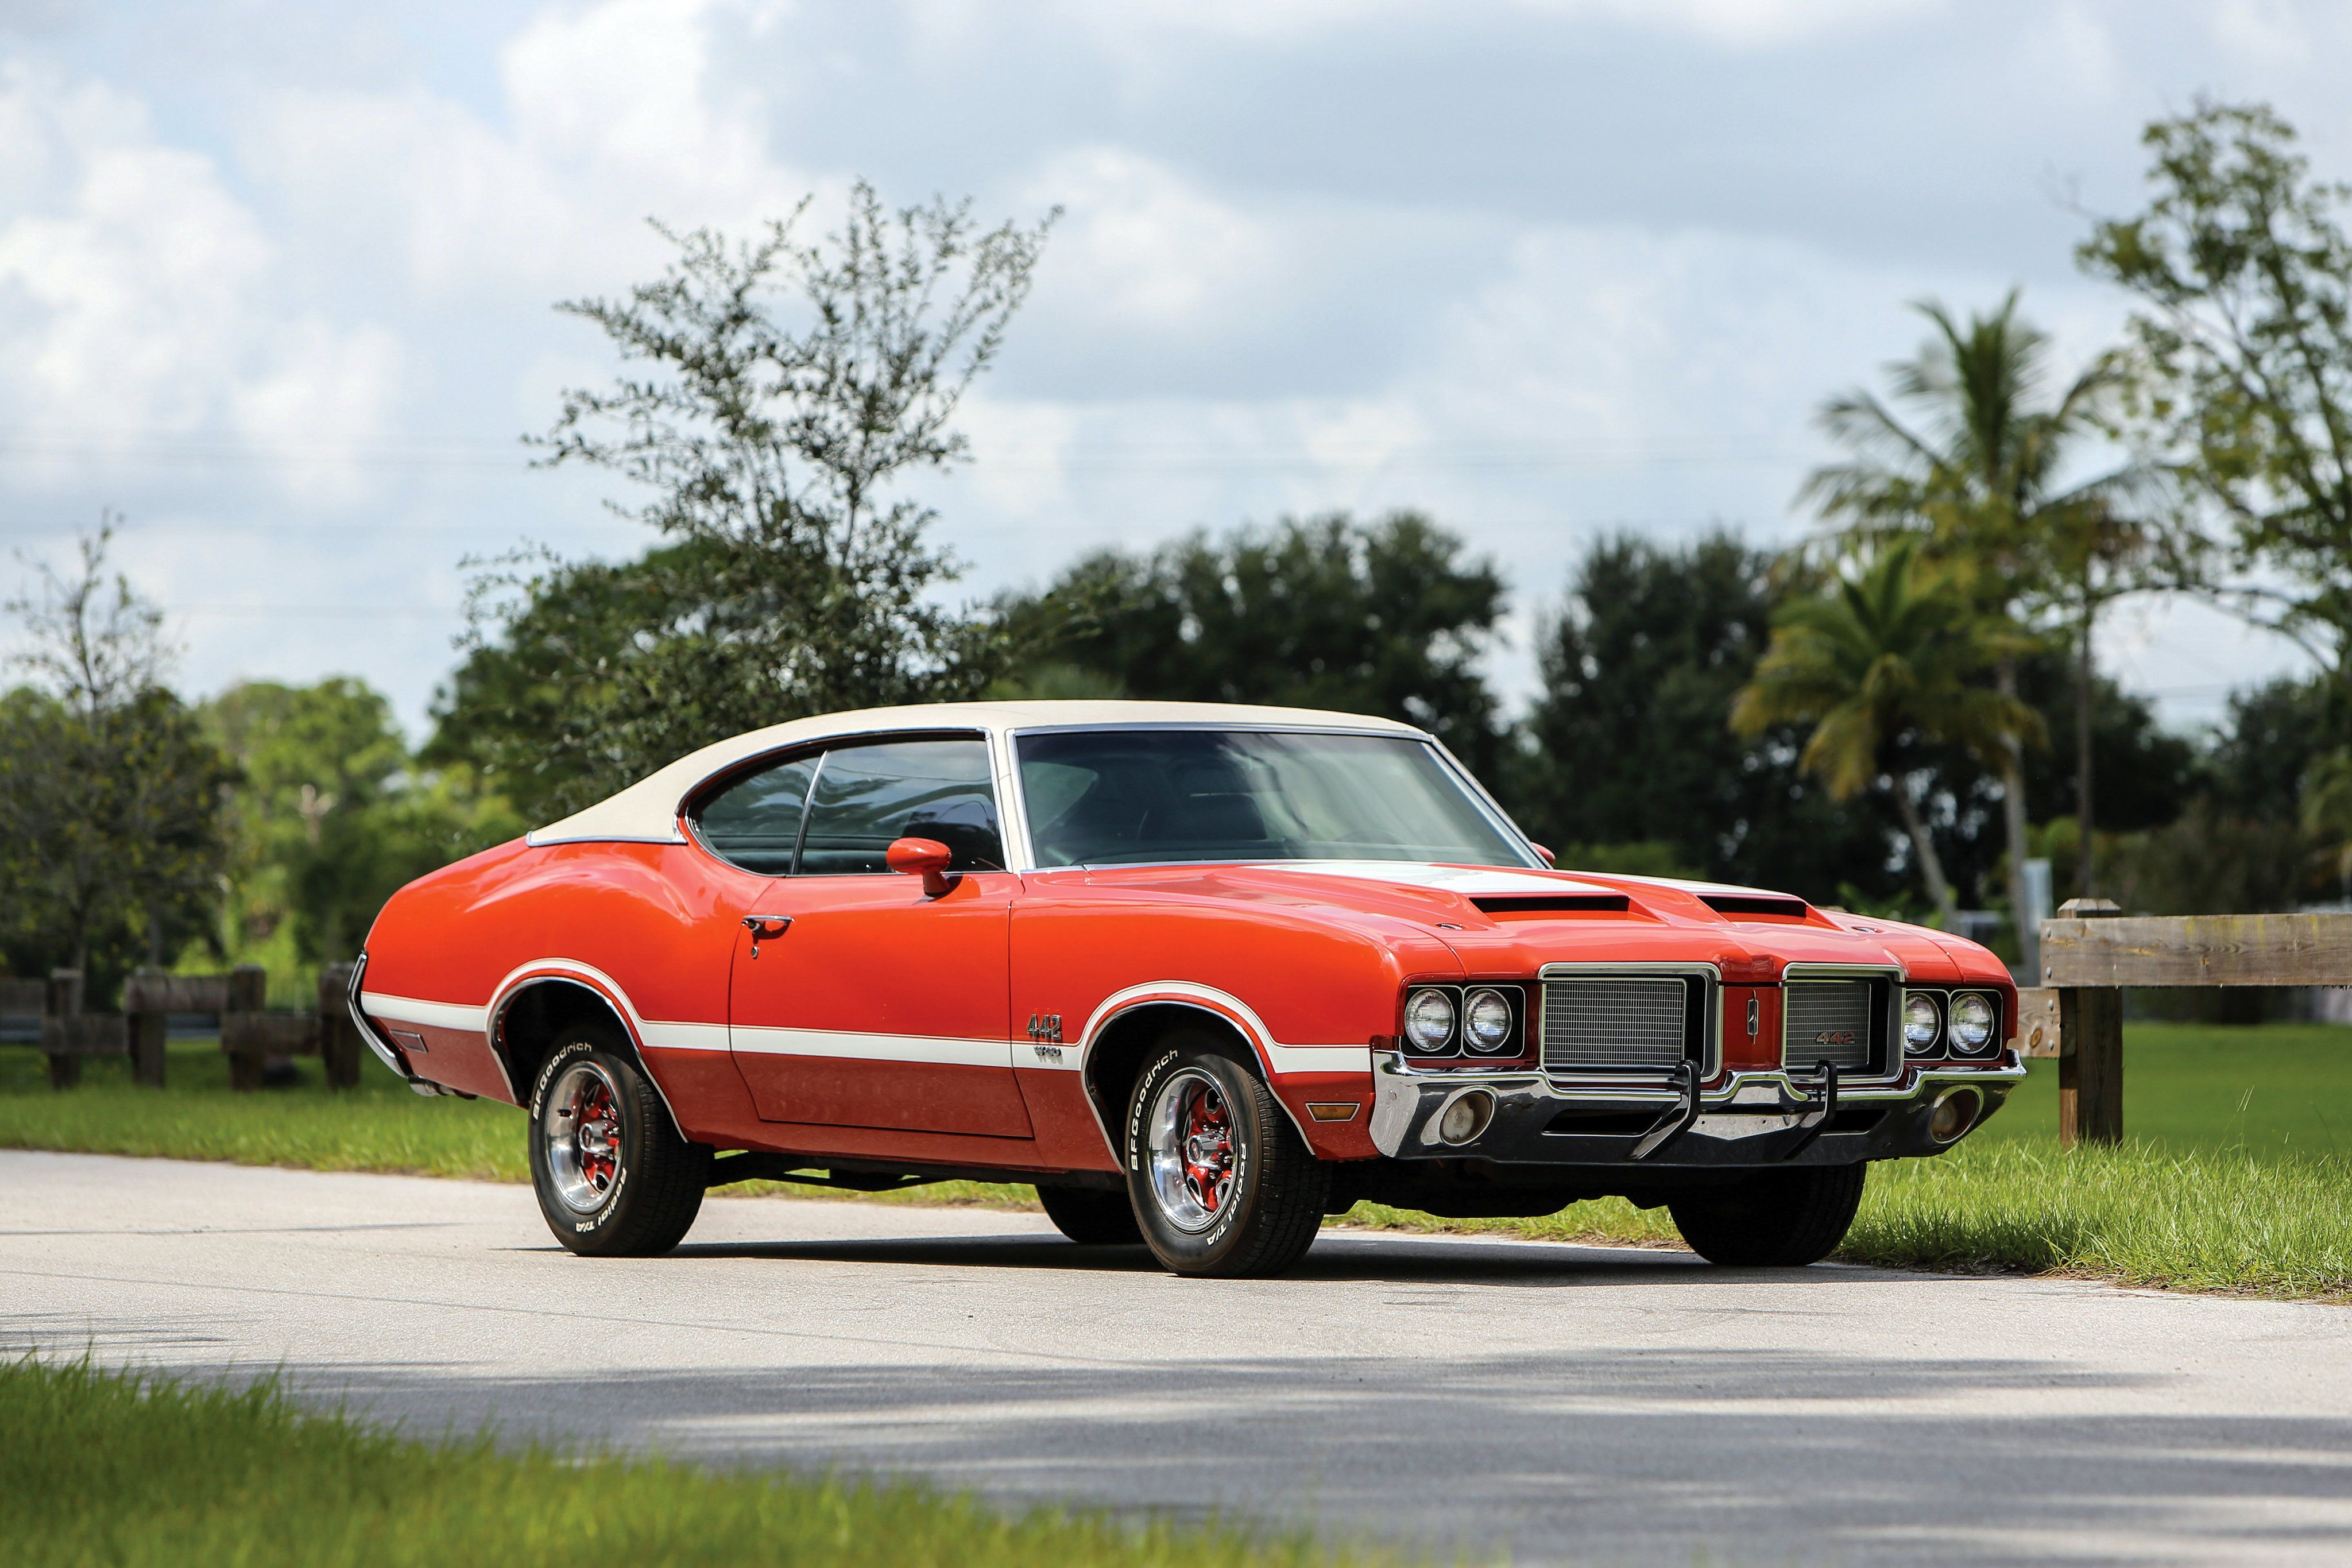 1972 oldsmobile cutlass 442 w 30 hardtop coupe http www musclecardefinition